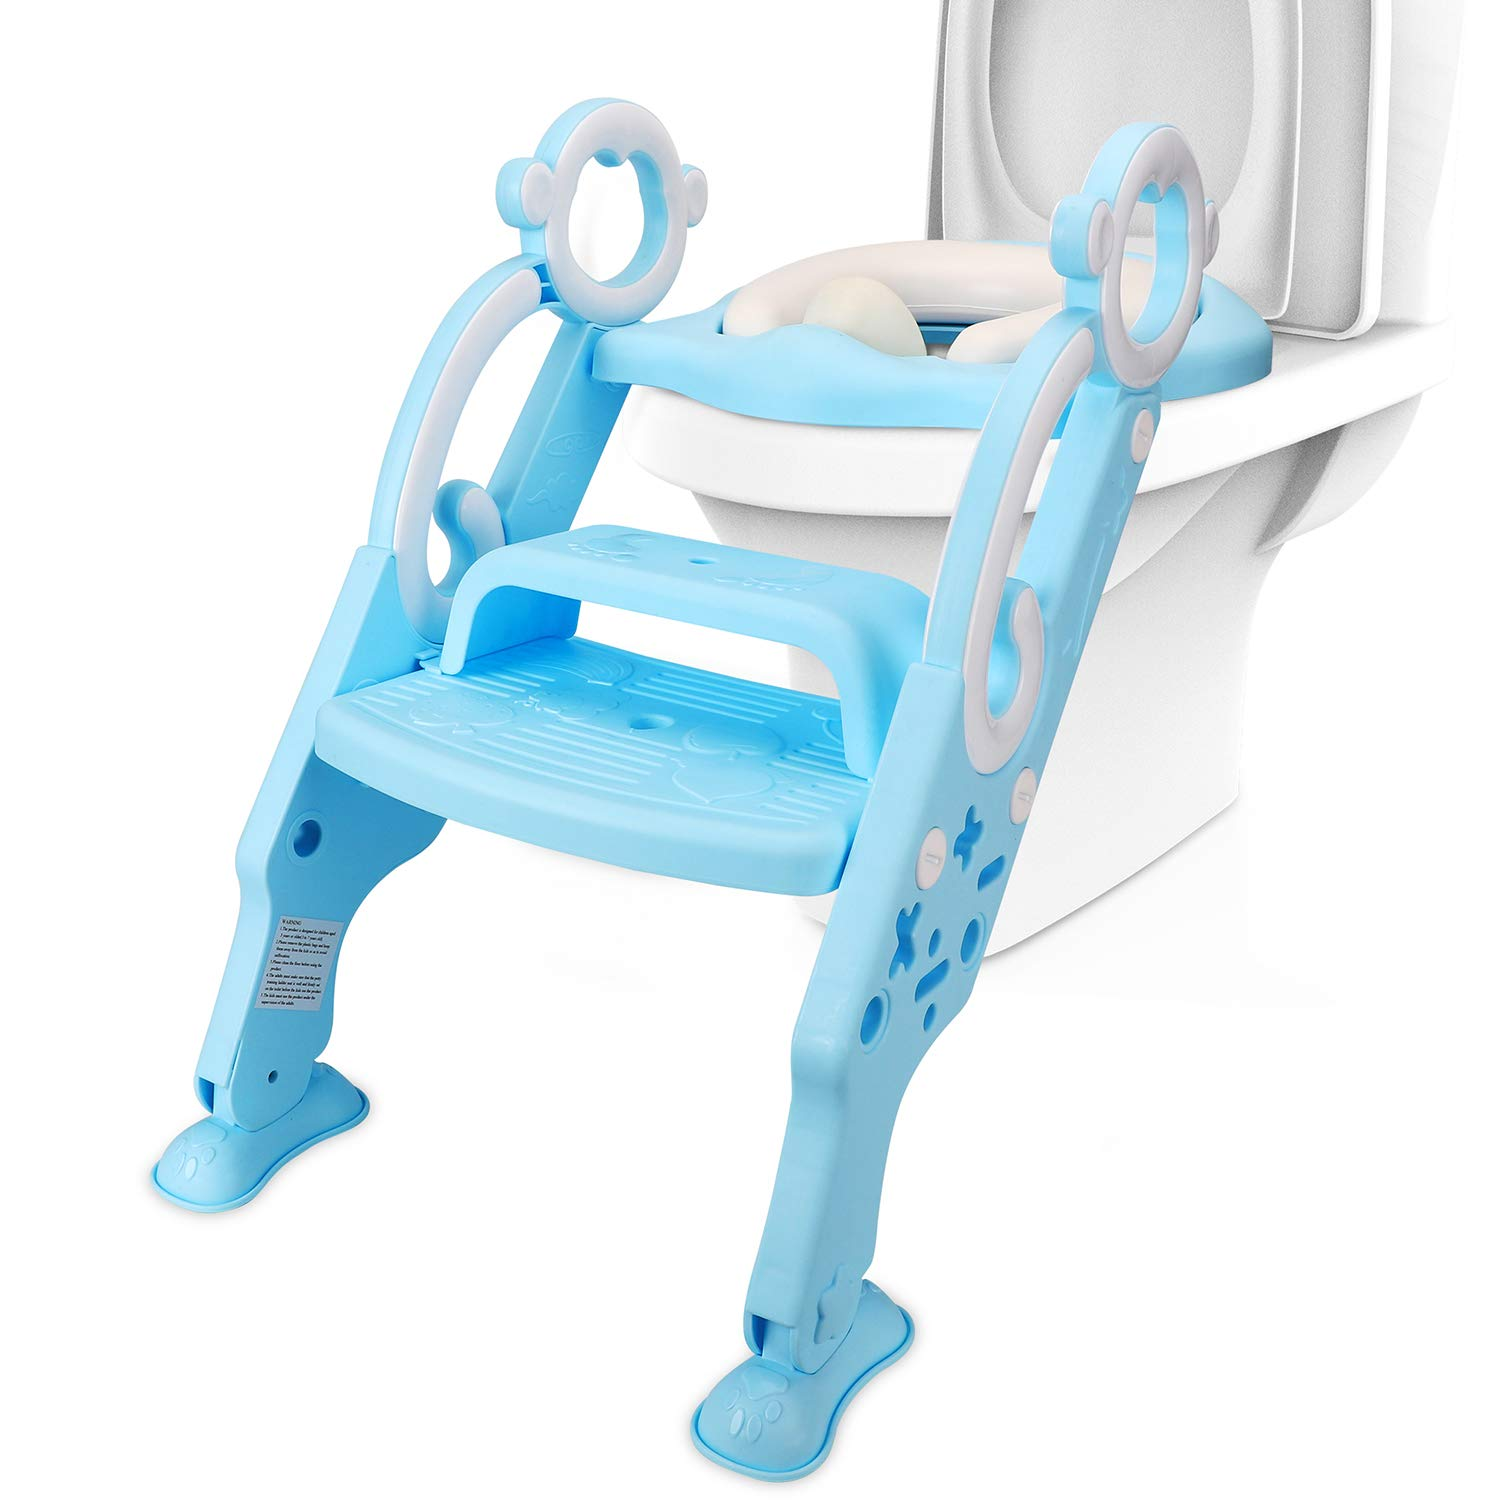 Potty Toilet Training Ladder Seat for Kids, Adjustable Baby Toilet Potty Chair with Sturdy Non-Slip Step Stool Ladder Anti-Splash Design Comfortable Handles for Toddlers, Boys and Girls